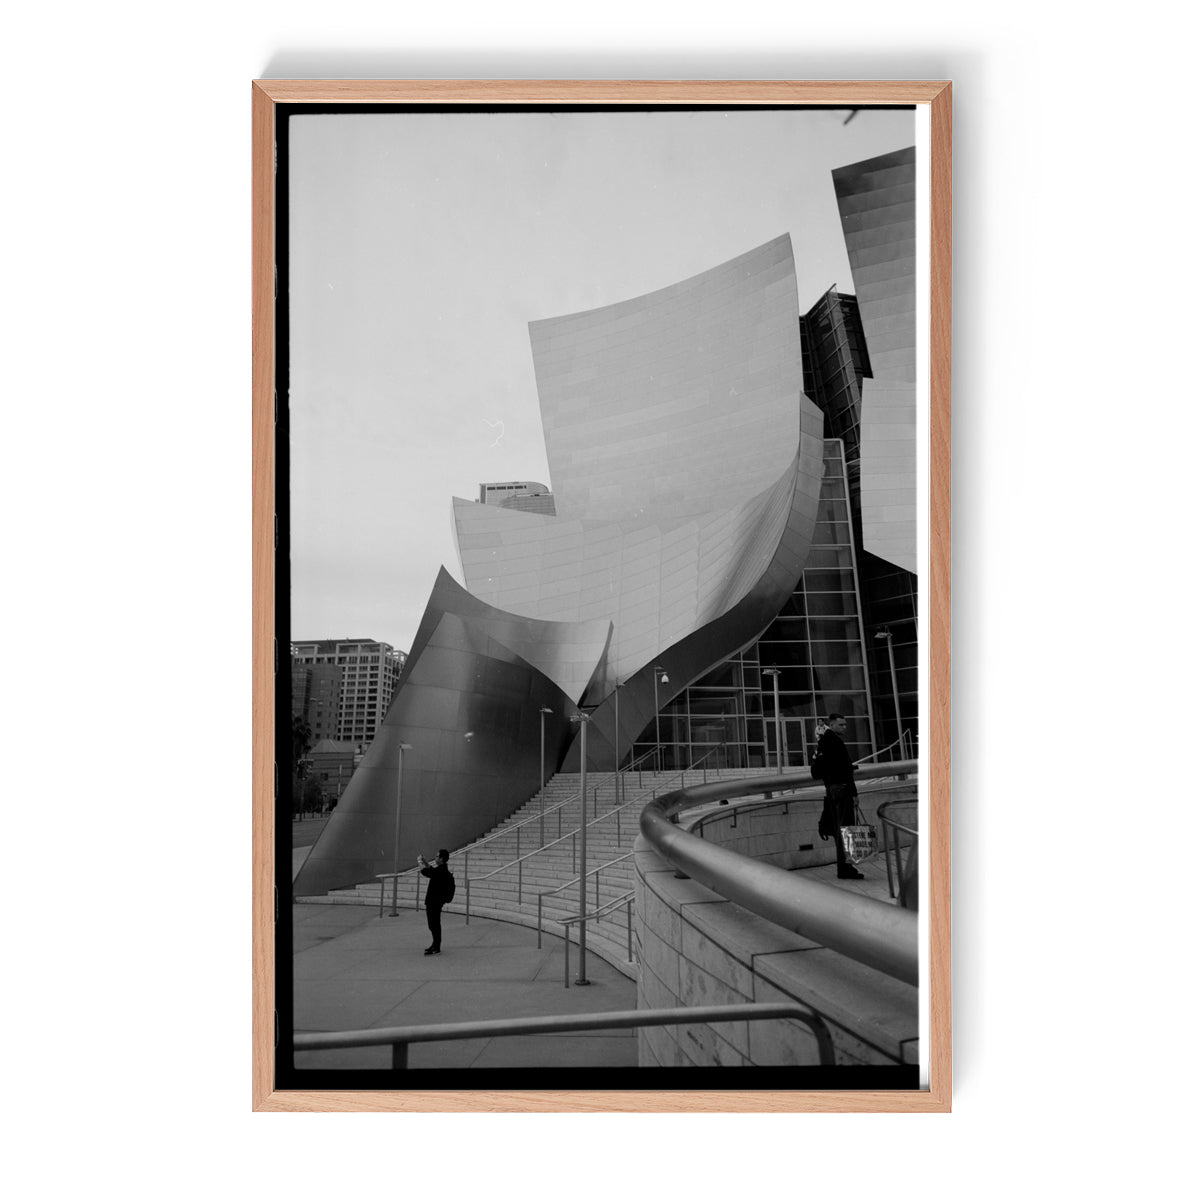 Hayden Worsfold black and white photography architecture  art print makers mrkt makers market melbourne